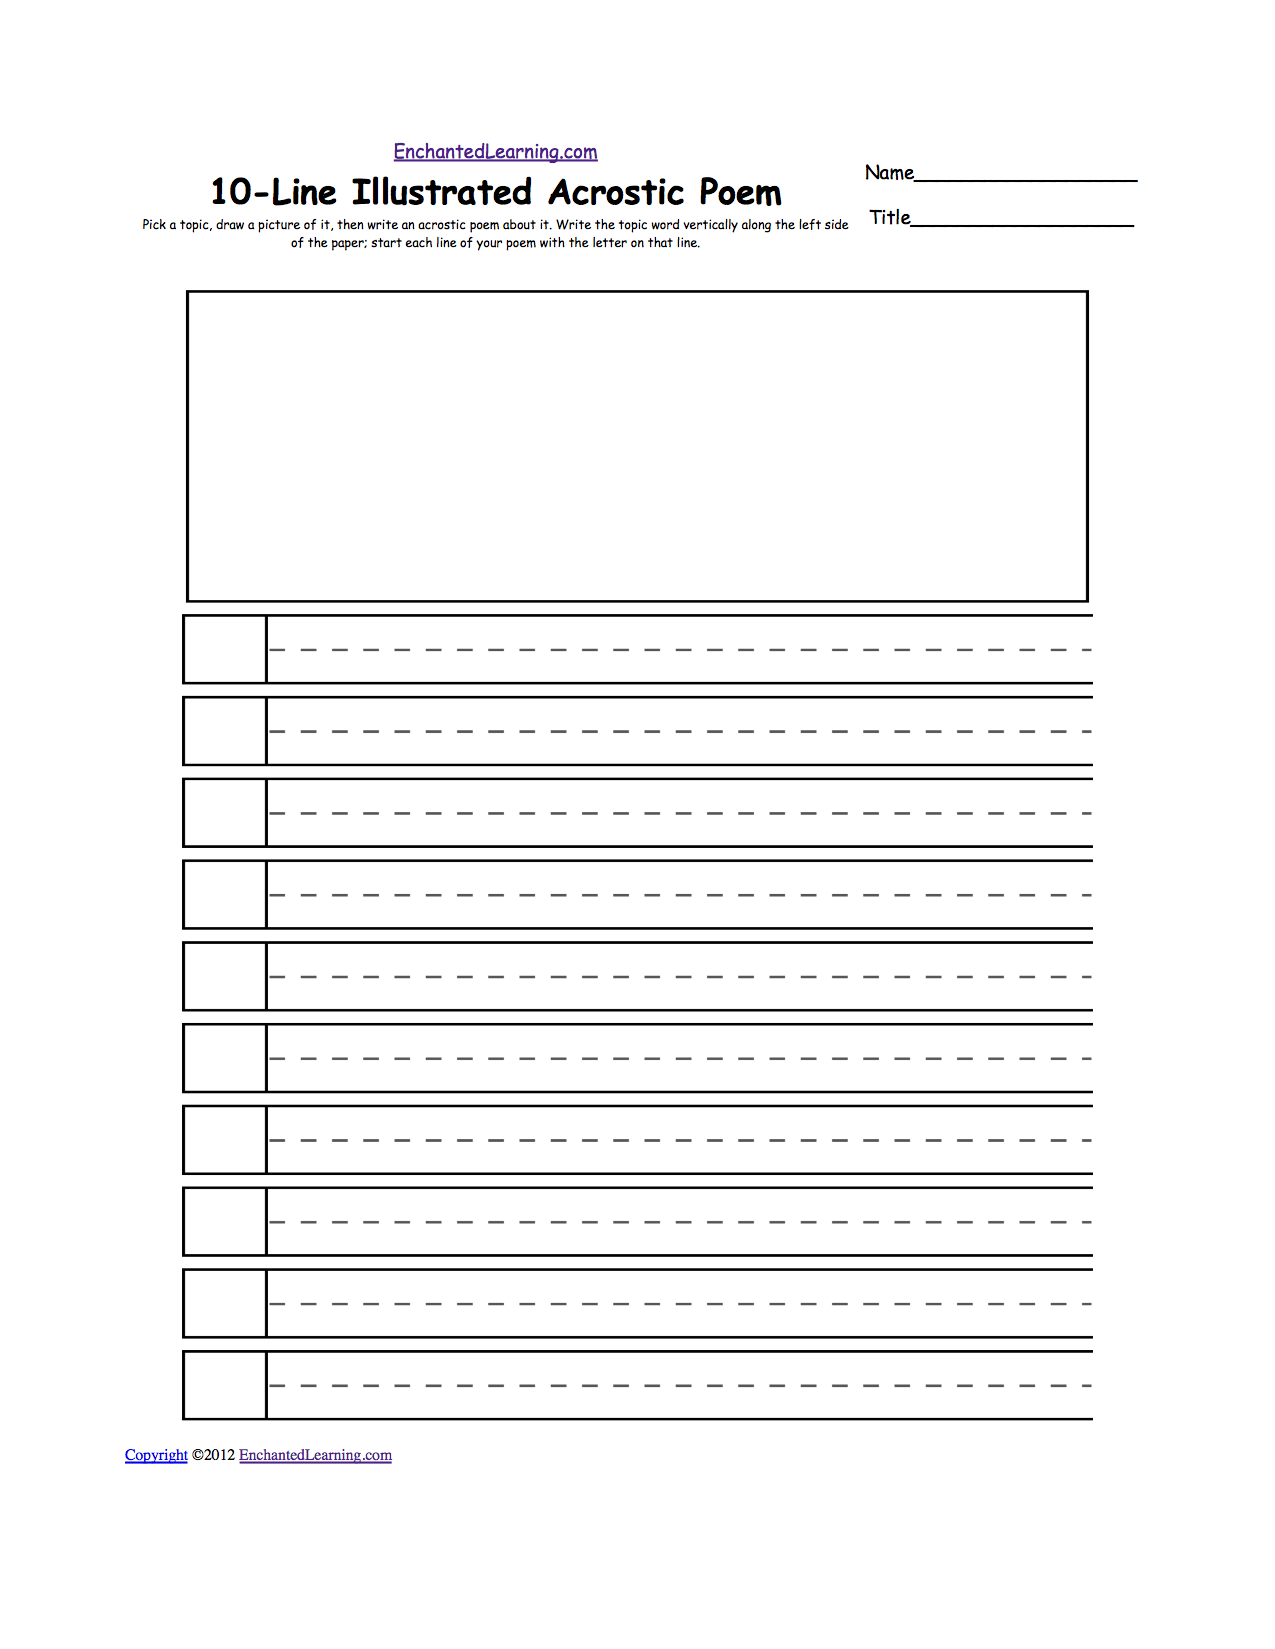 Blank Illustrated Acrostic Poem Worksheets (Handwriting